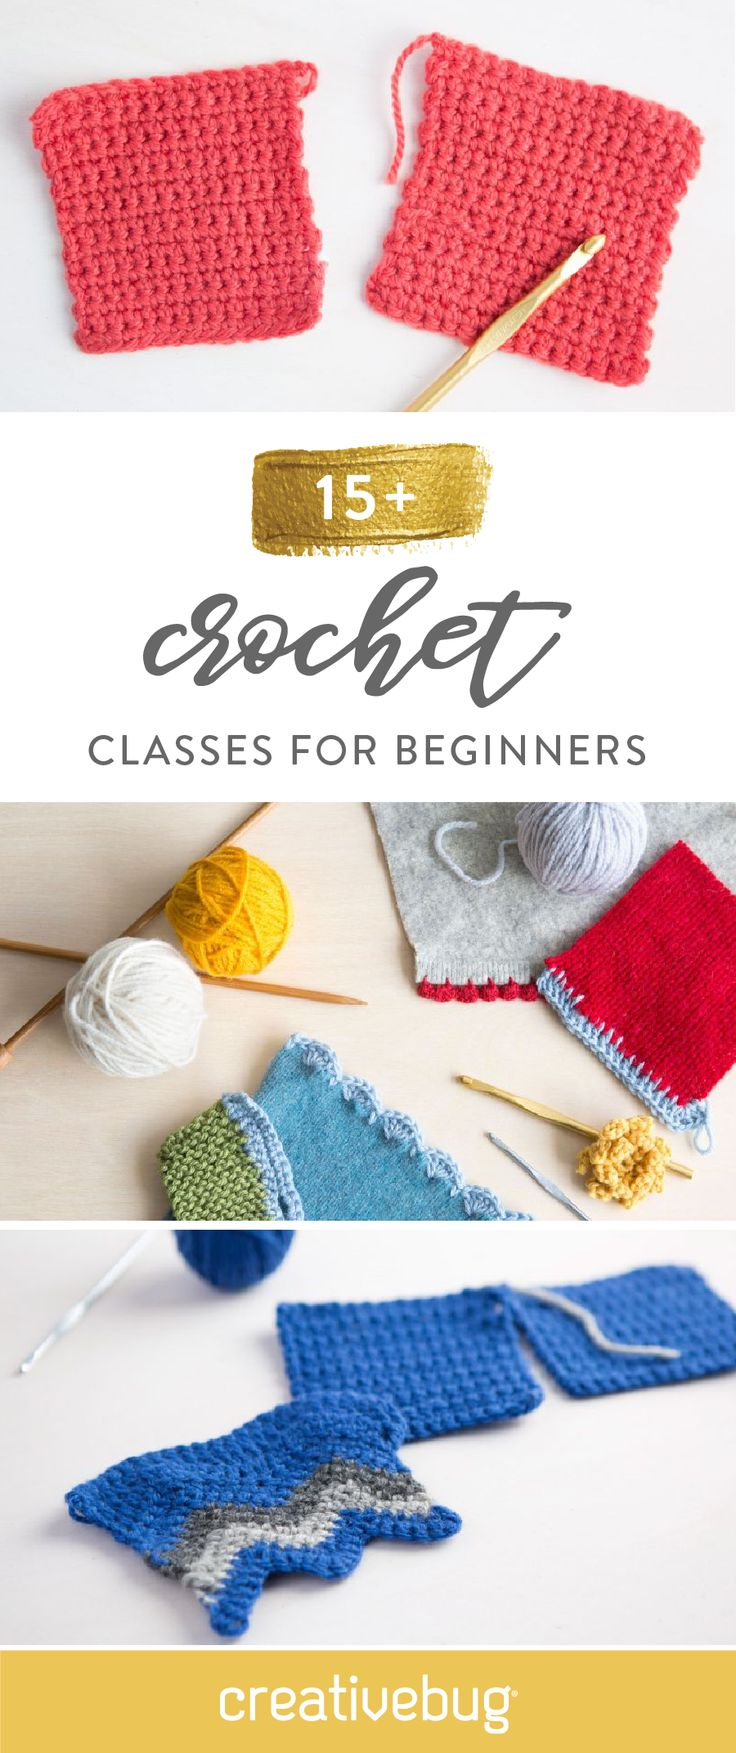 It's time to put those crochet needles to good use! This collection of 15+ crochet classes for beginners from Creativebug can help you learn how to make handmade items like rugs, blankets, and even pom poms!